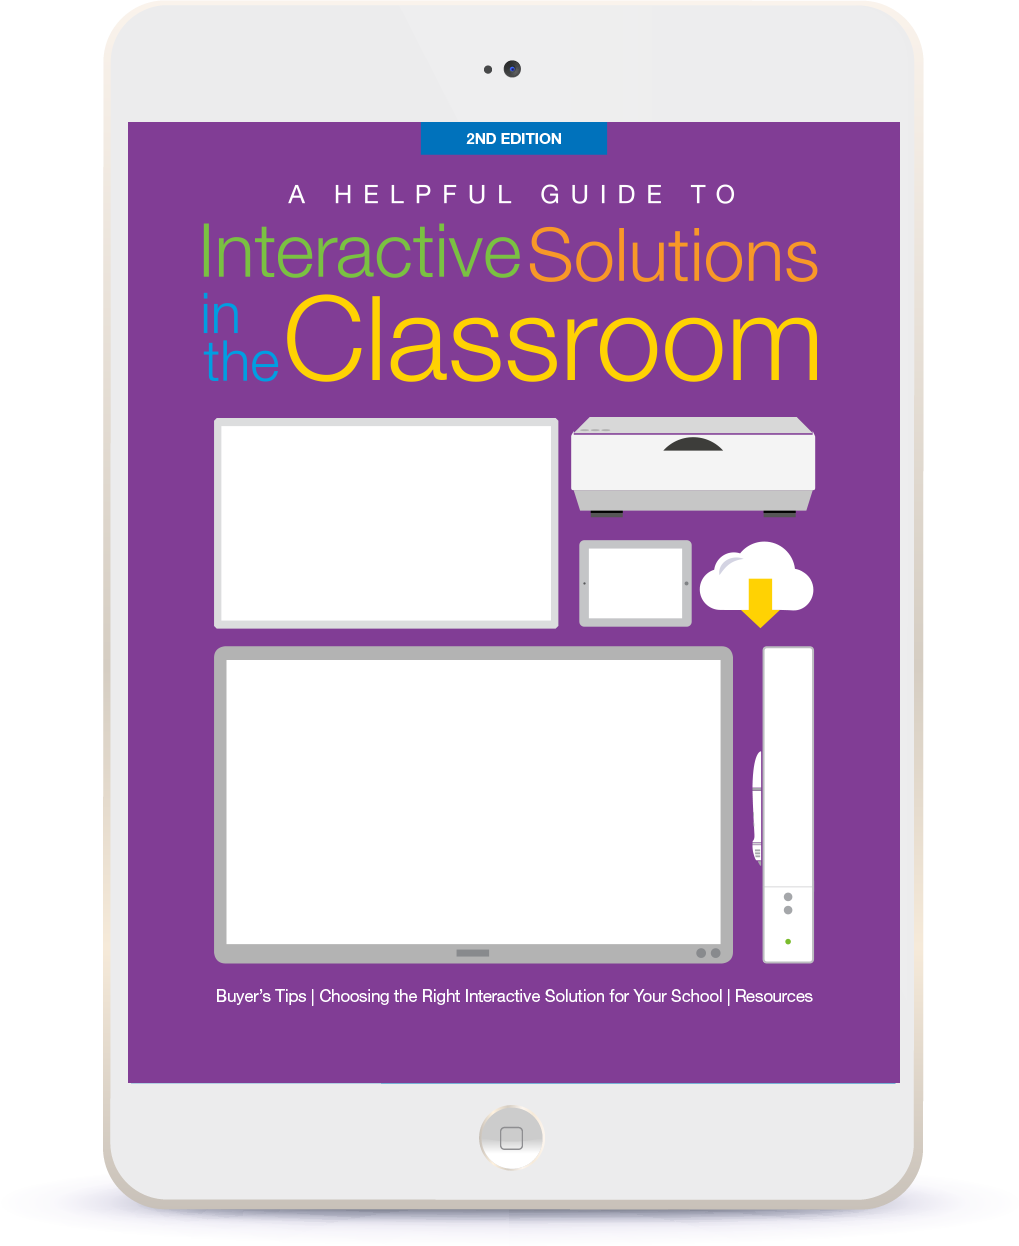 Selecting Whole-Class Learning Solutions Made Easy!